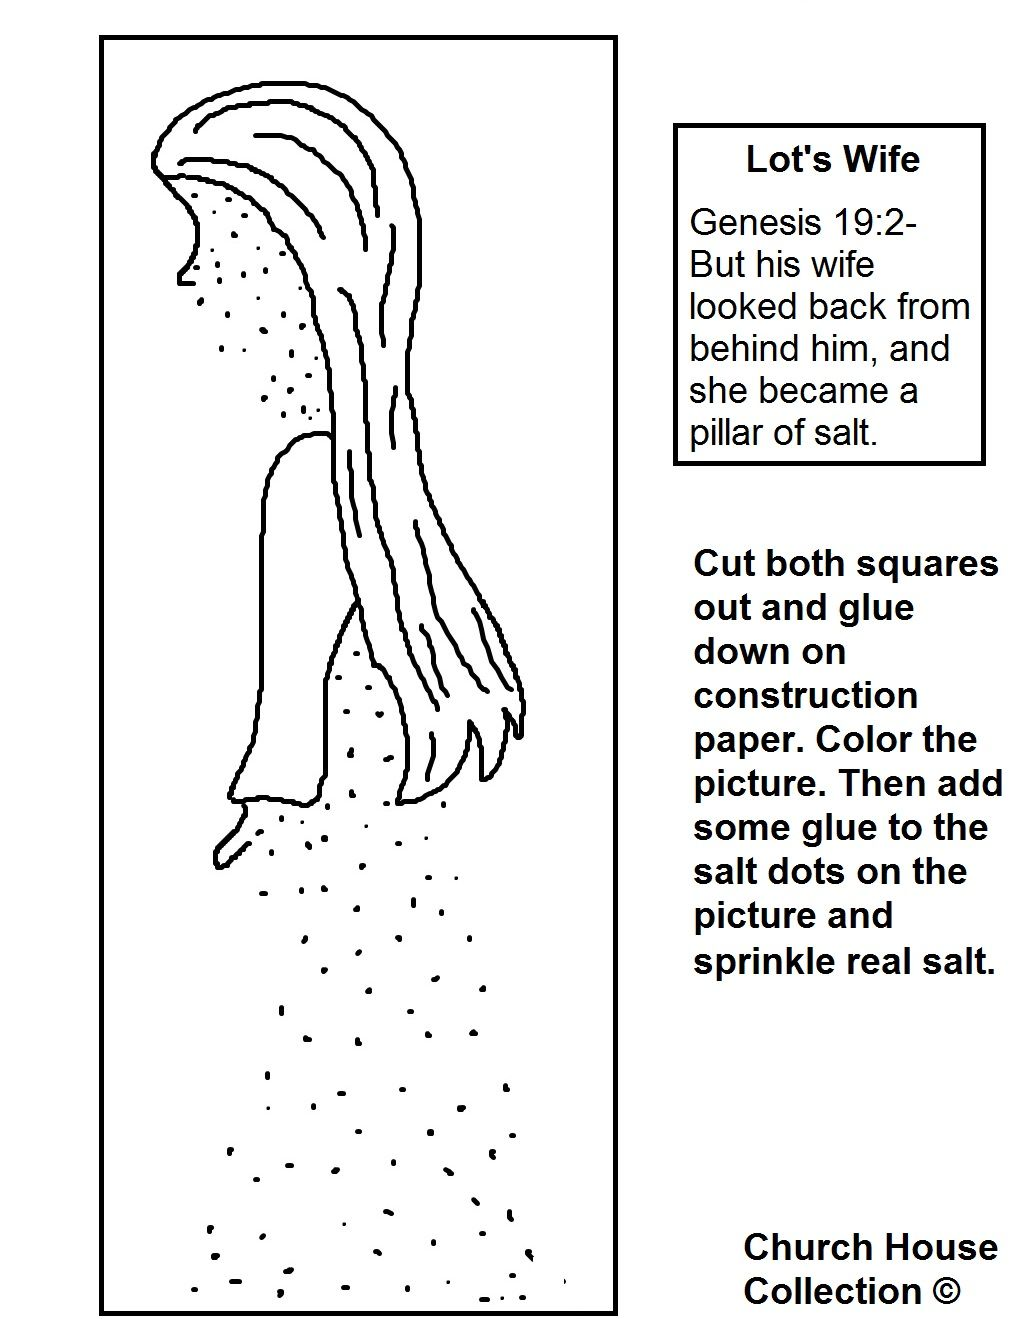 Church house collection blog lot's wife turned into a pillar of Jehovah Witness Coloring Pages Wife and Lot Bible Story Coloring Pages pillar of salt activity